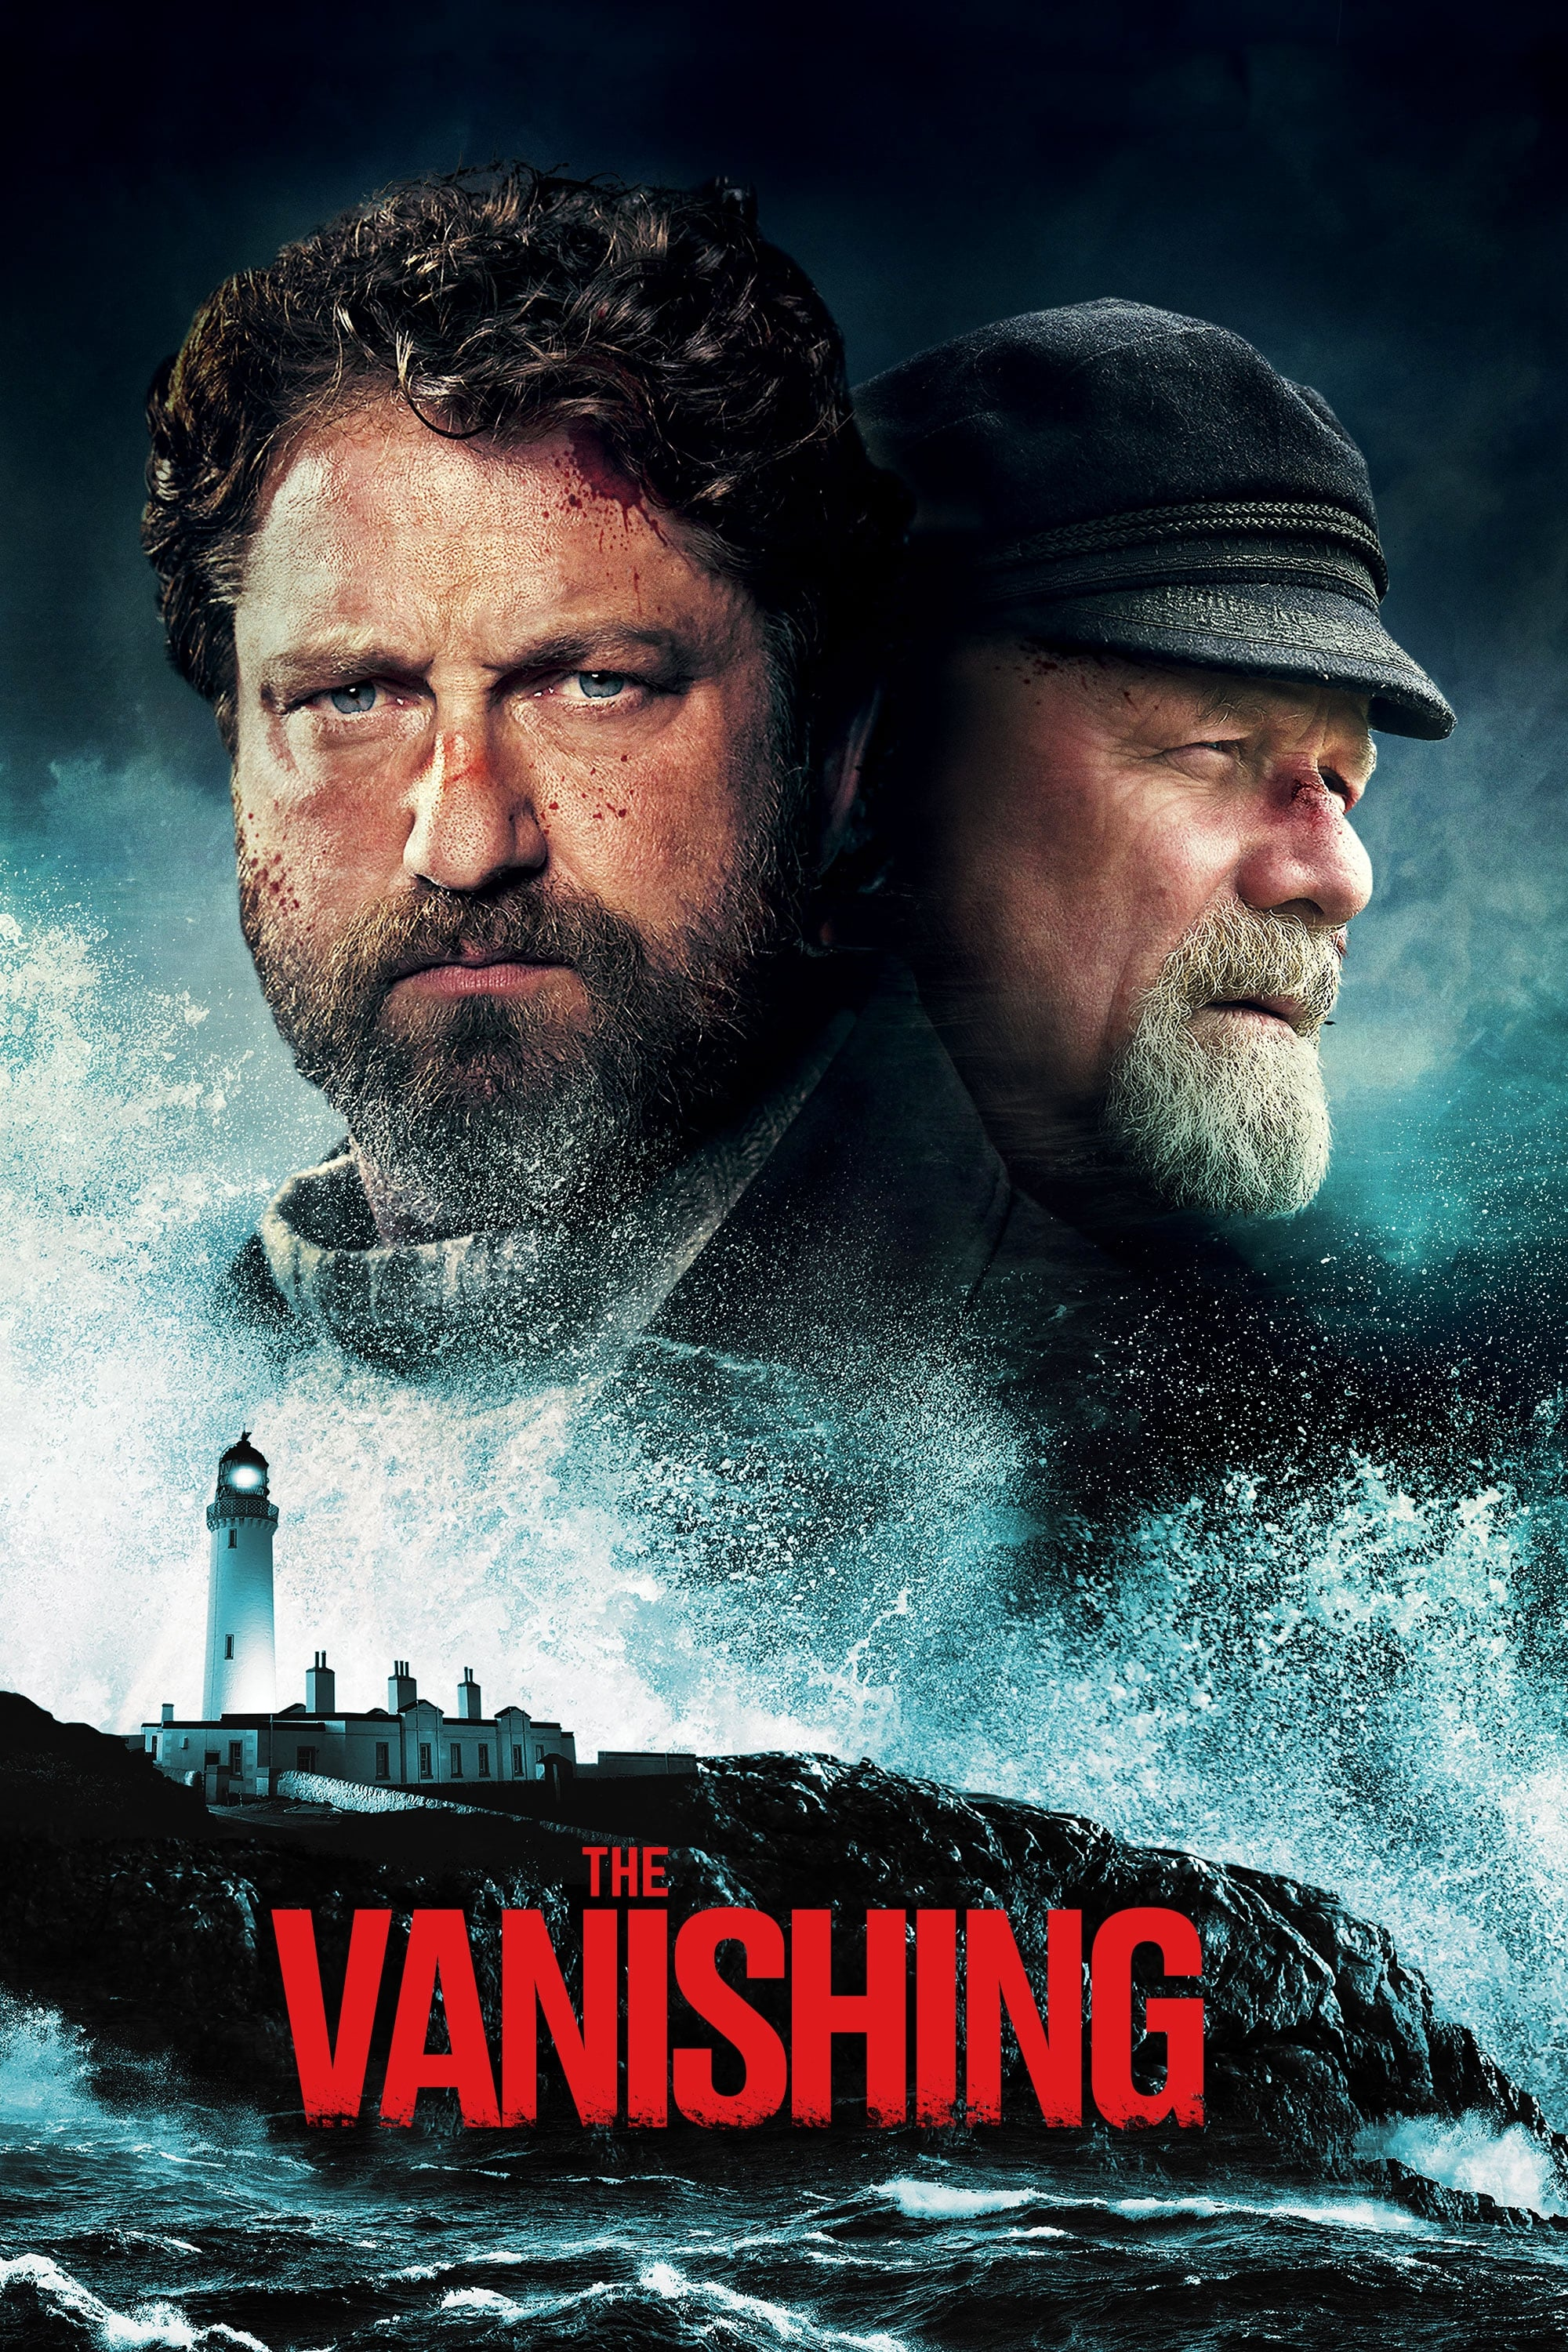 The Vanishing (2019)